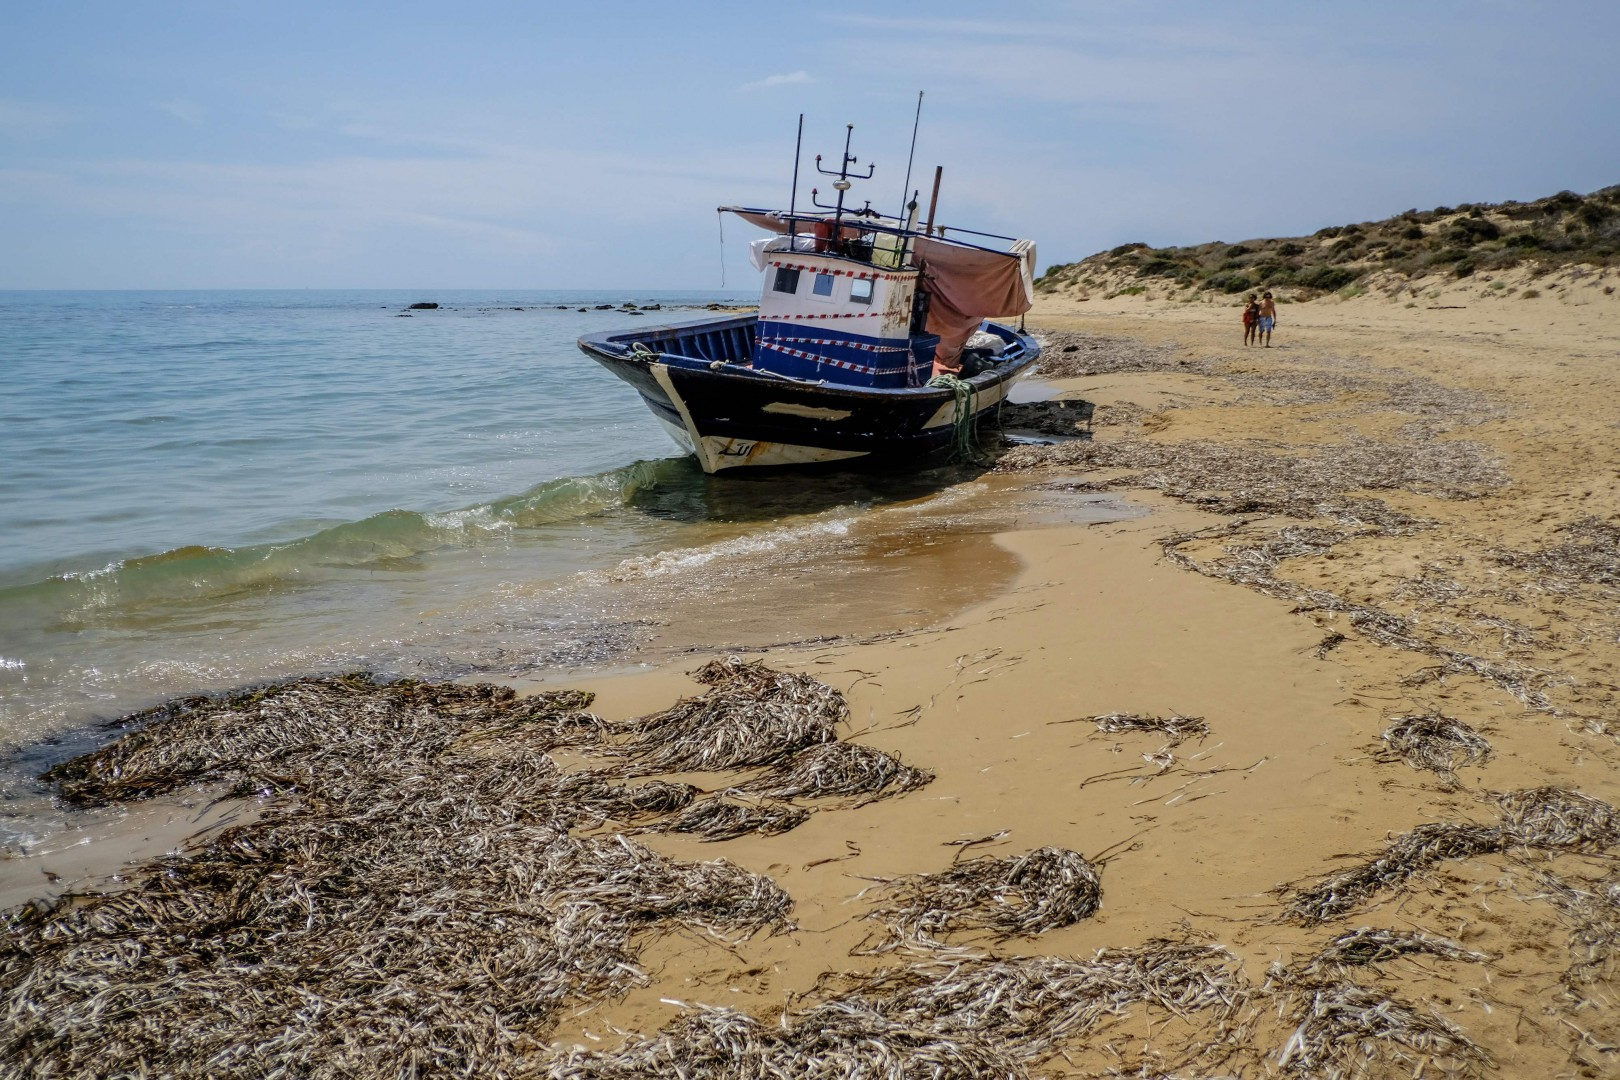 This picture taken on August 21, 2018 shows a boat used by migrants, with the seals of seizure by the Italian carabinieri, stranded on the beach of Capo Bianco, near Ribera municipality, in the province of Agrigento. (Photo by Andreas SOLARO / AFP)